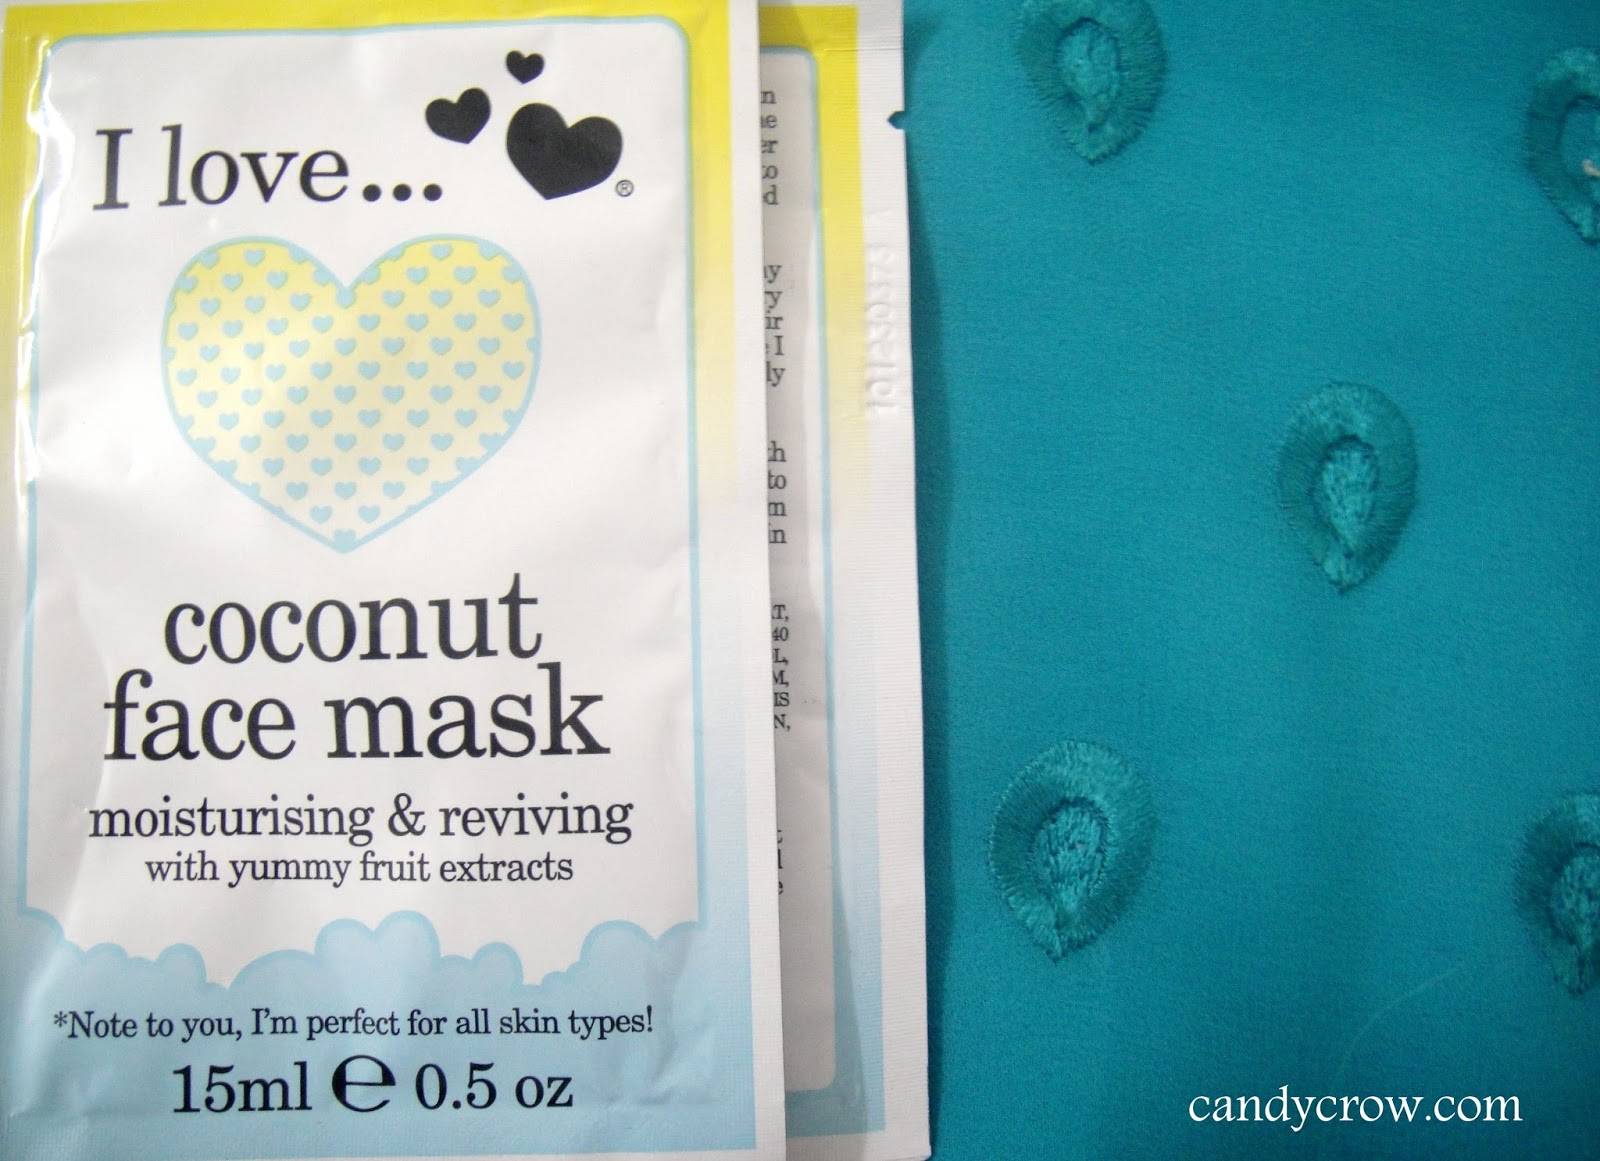 I Love... Coconut Mask